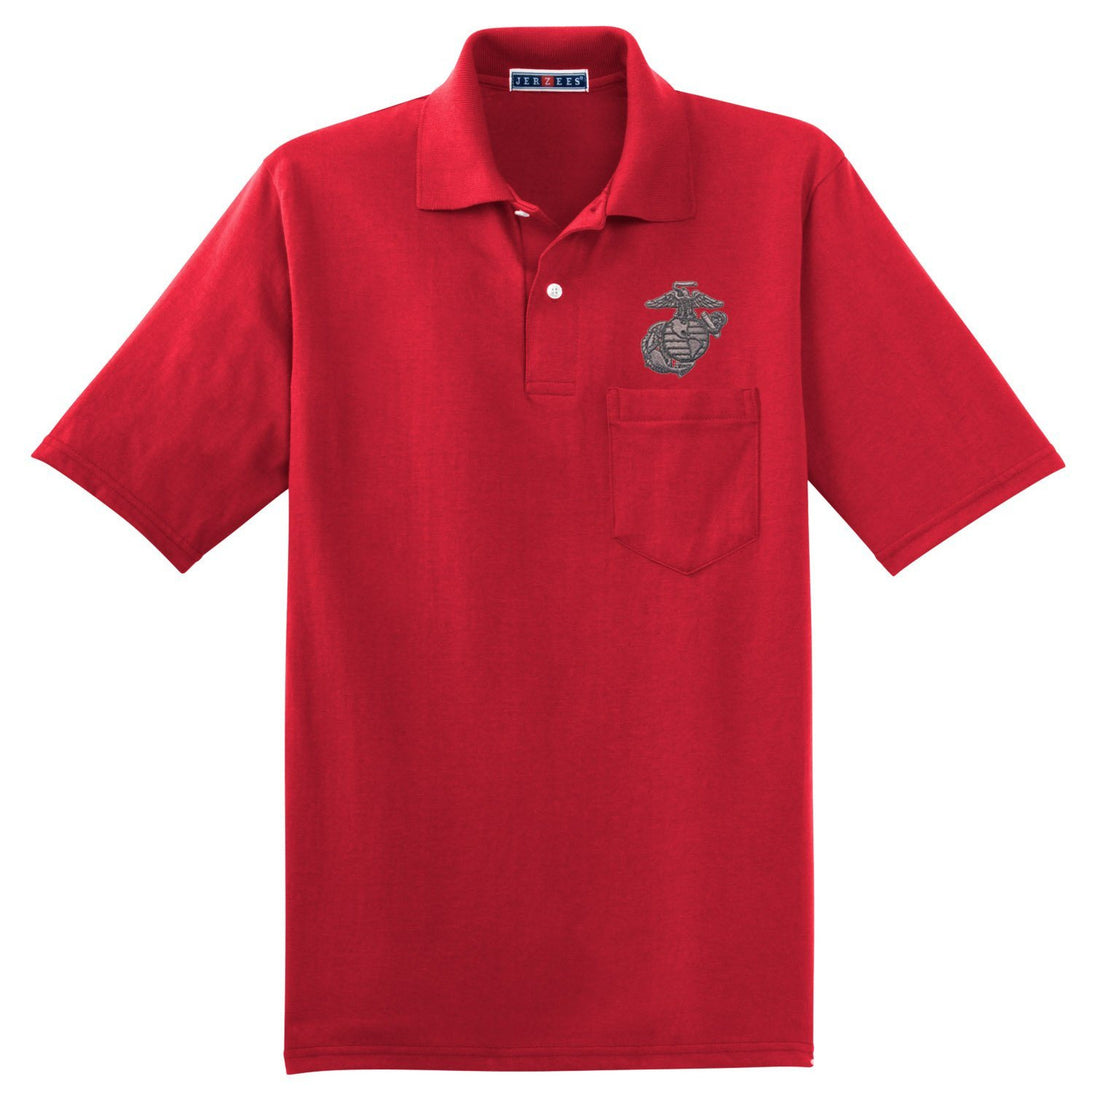 Metal EGA Embroidered Pocket Polo